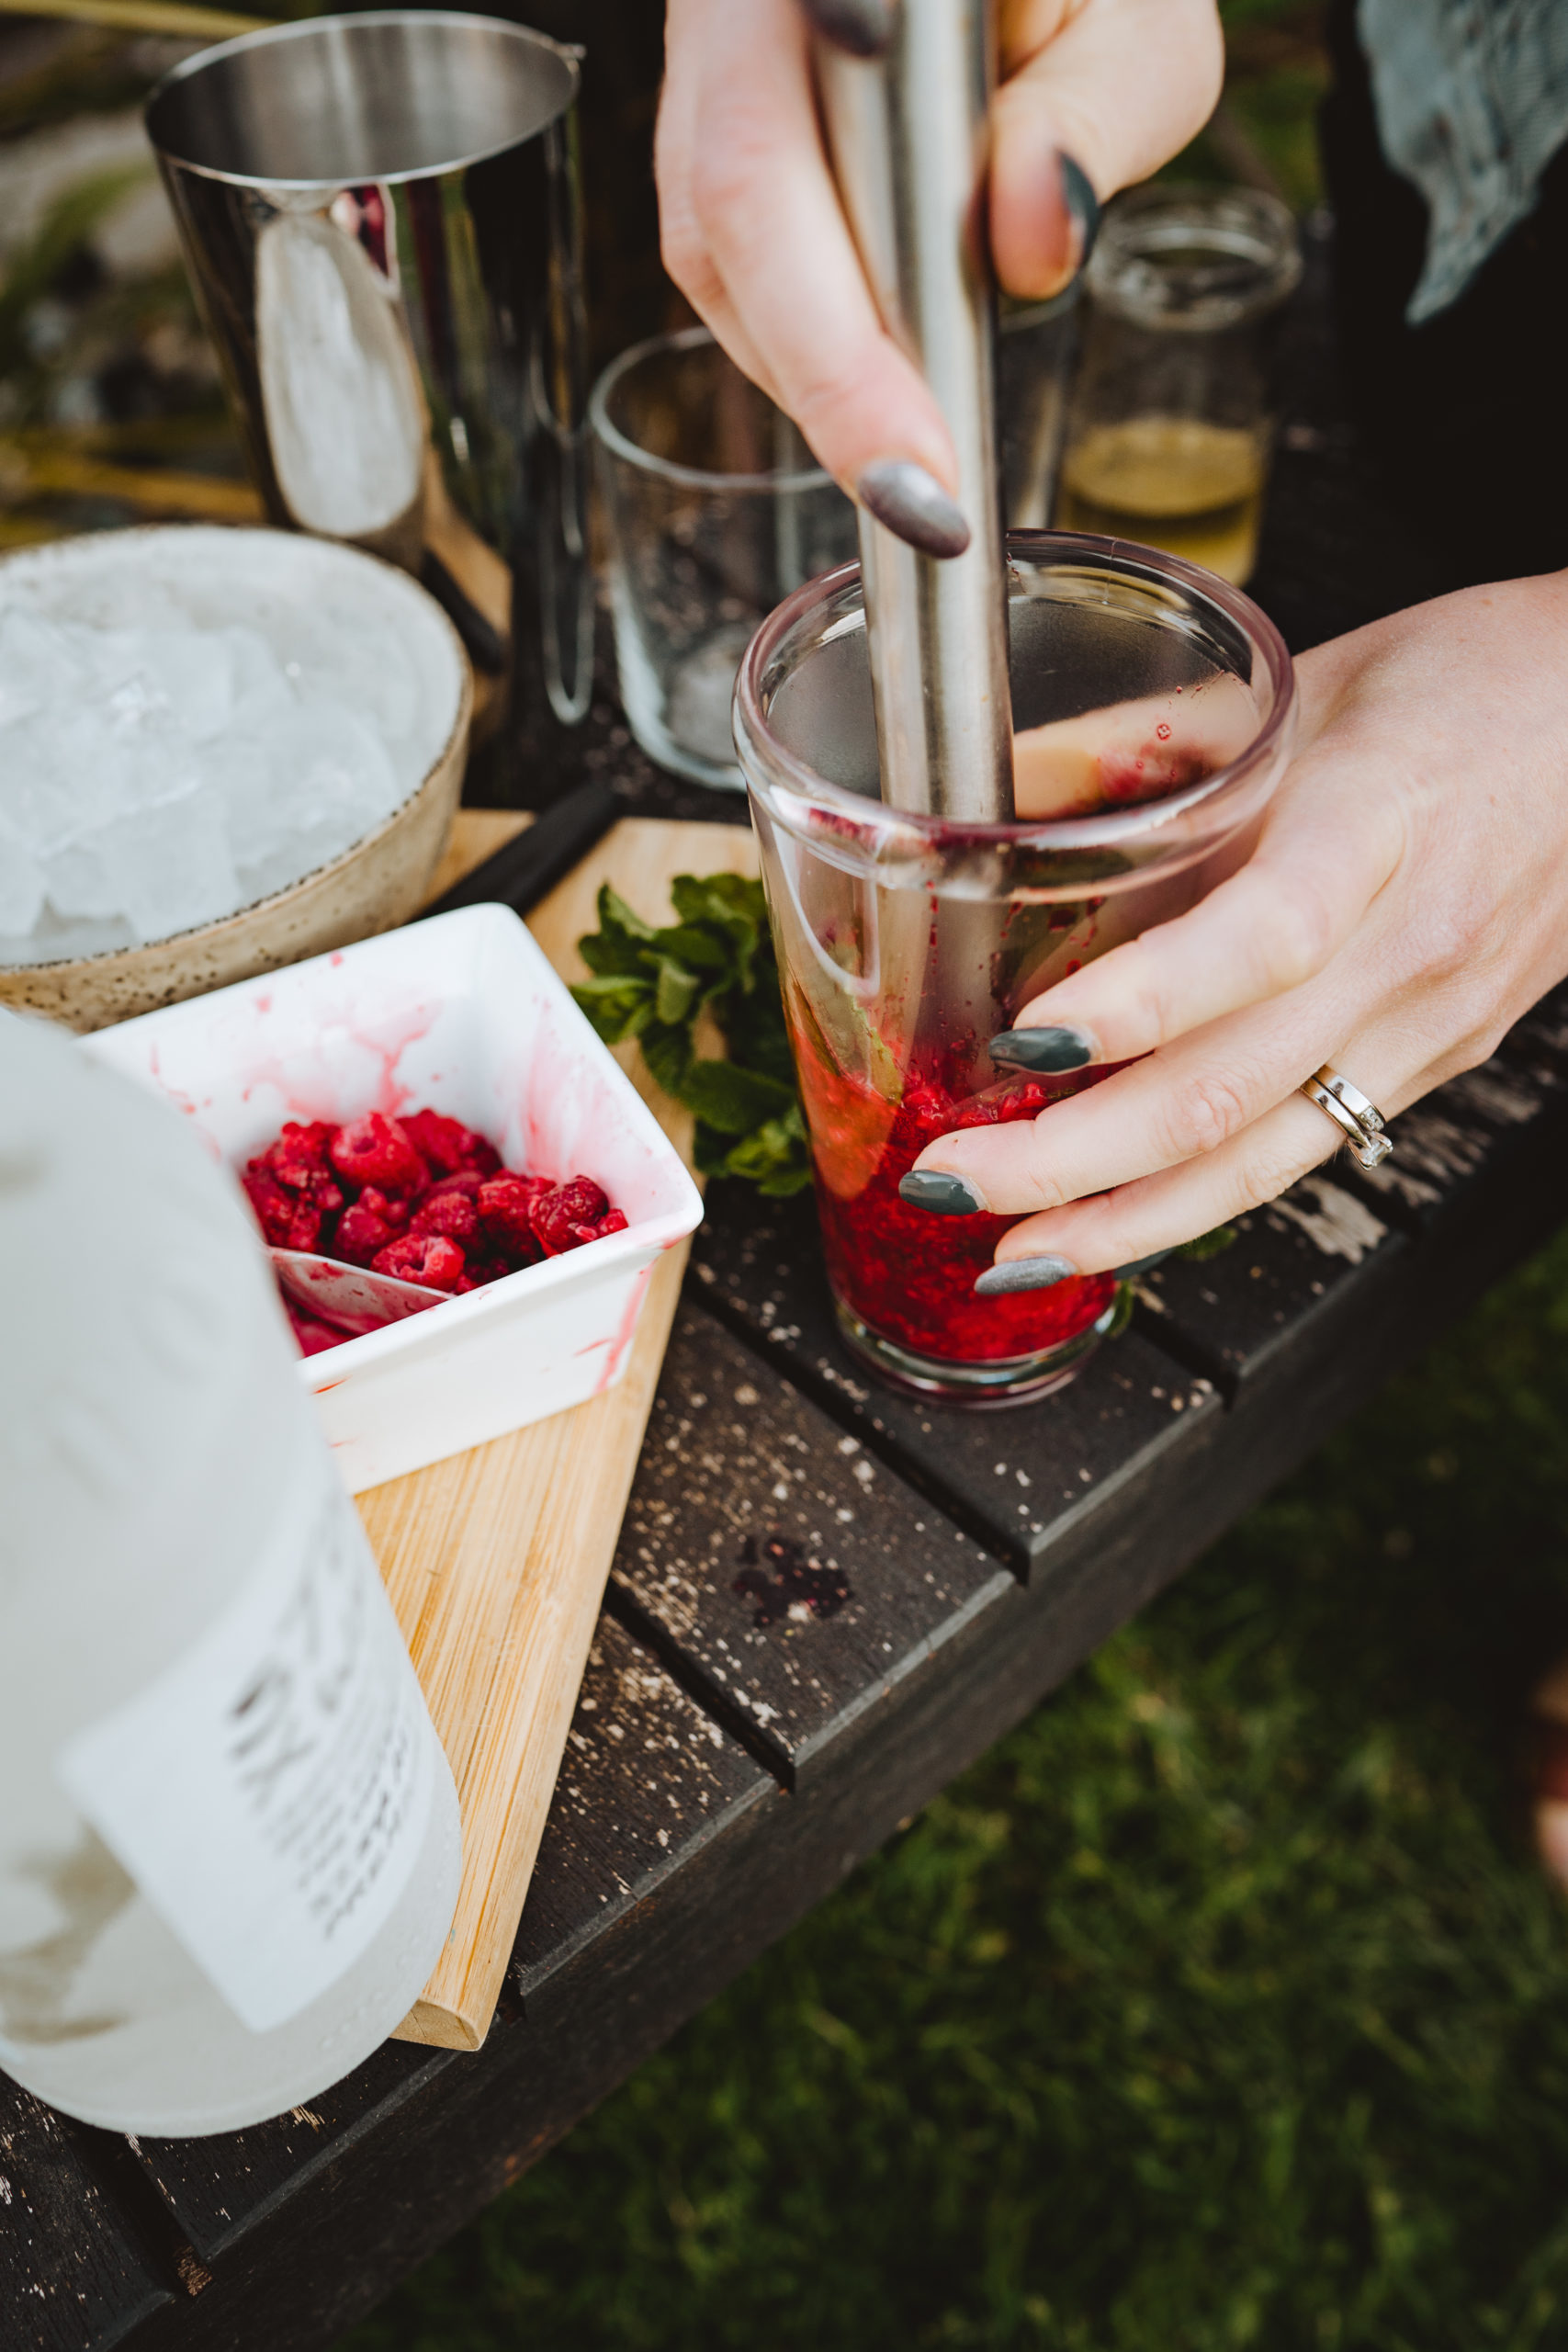 mixing up a raspberry mojito cocktail